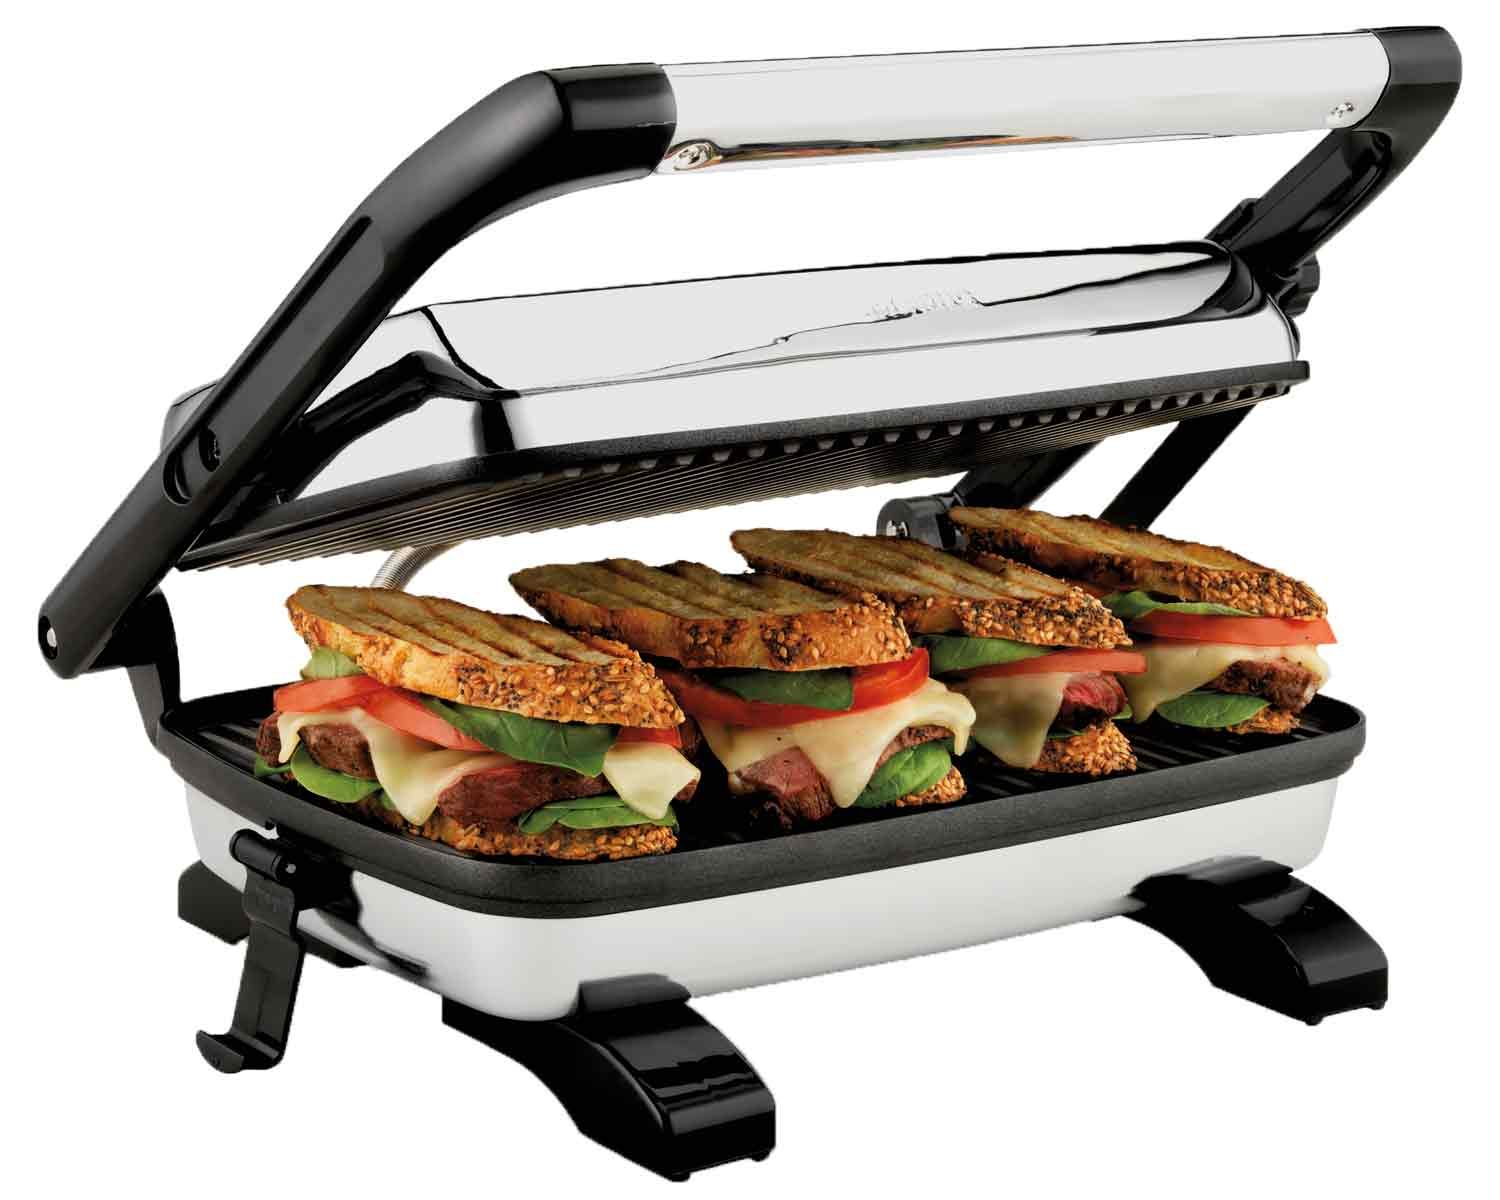 fill tower toaster kitchen maker b m products sandwich deep home